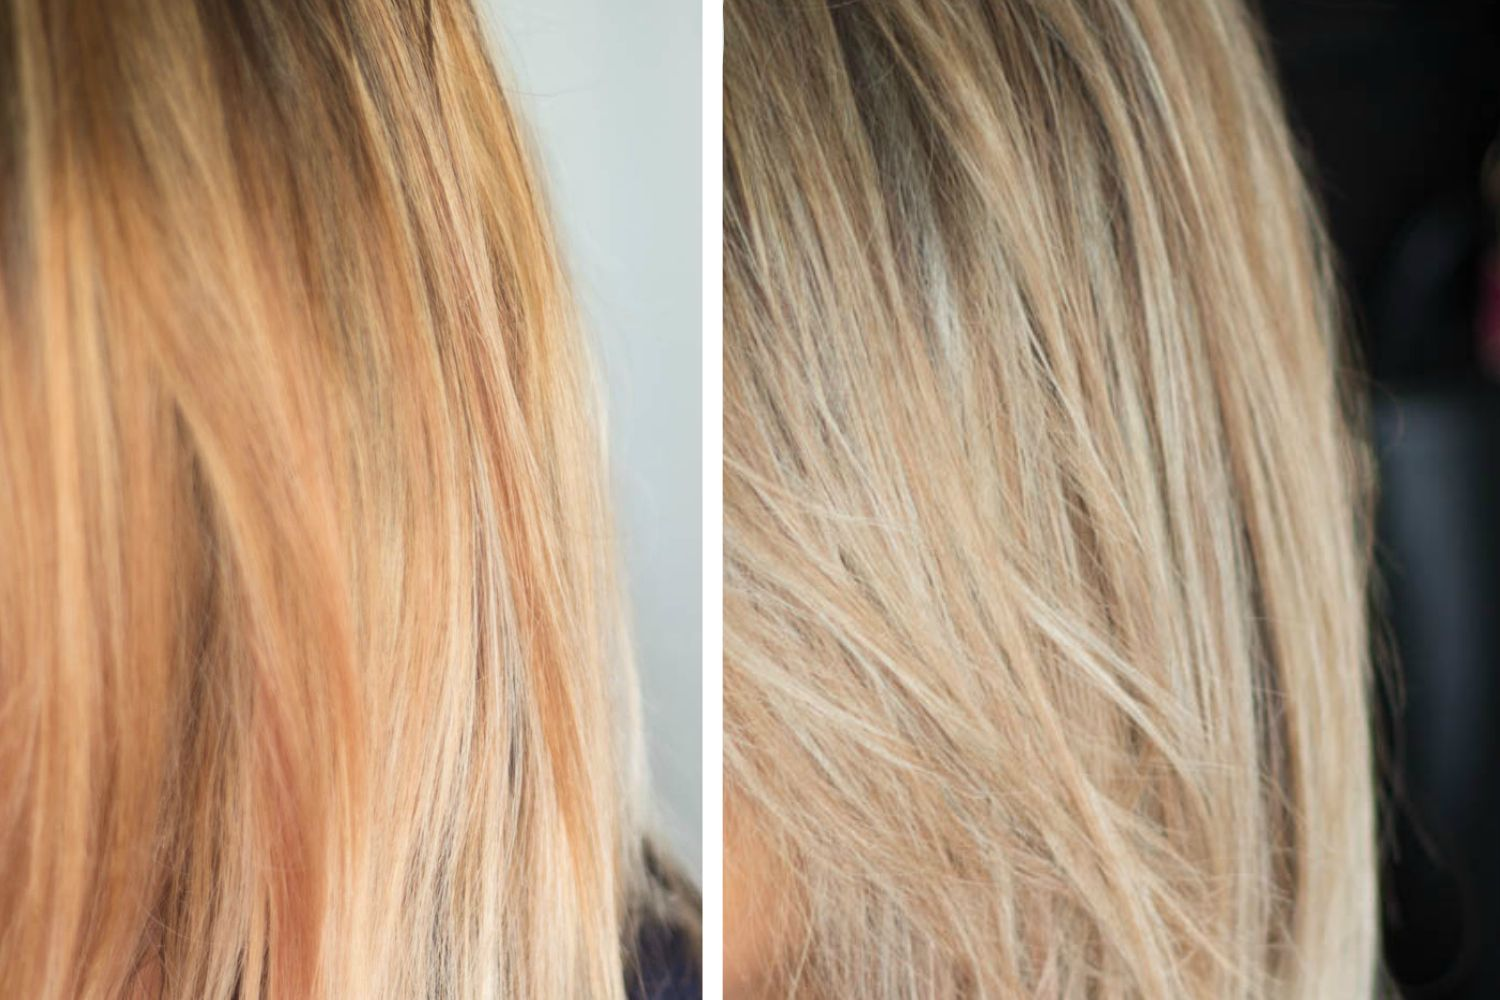 How To Tone Brassy Hair At Home Wella T14 And Wella T18 Toner For Blonde Hair Toning Blonde Hair Brassy Hair